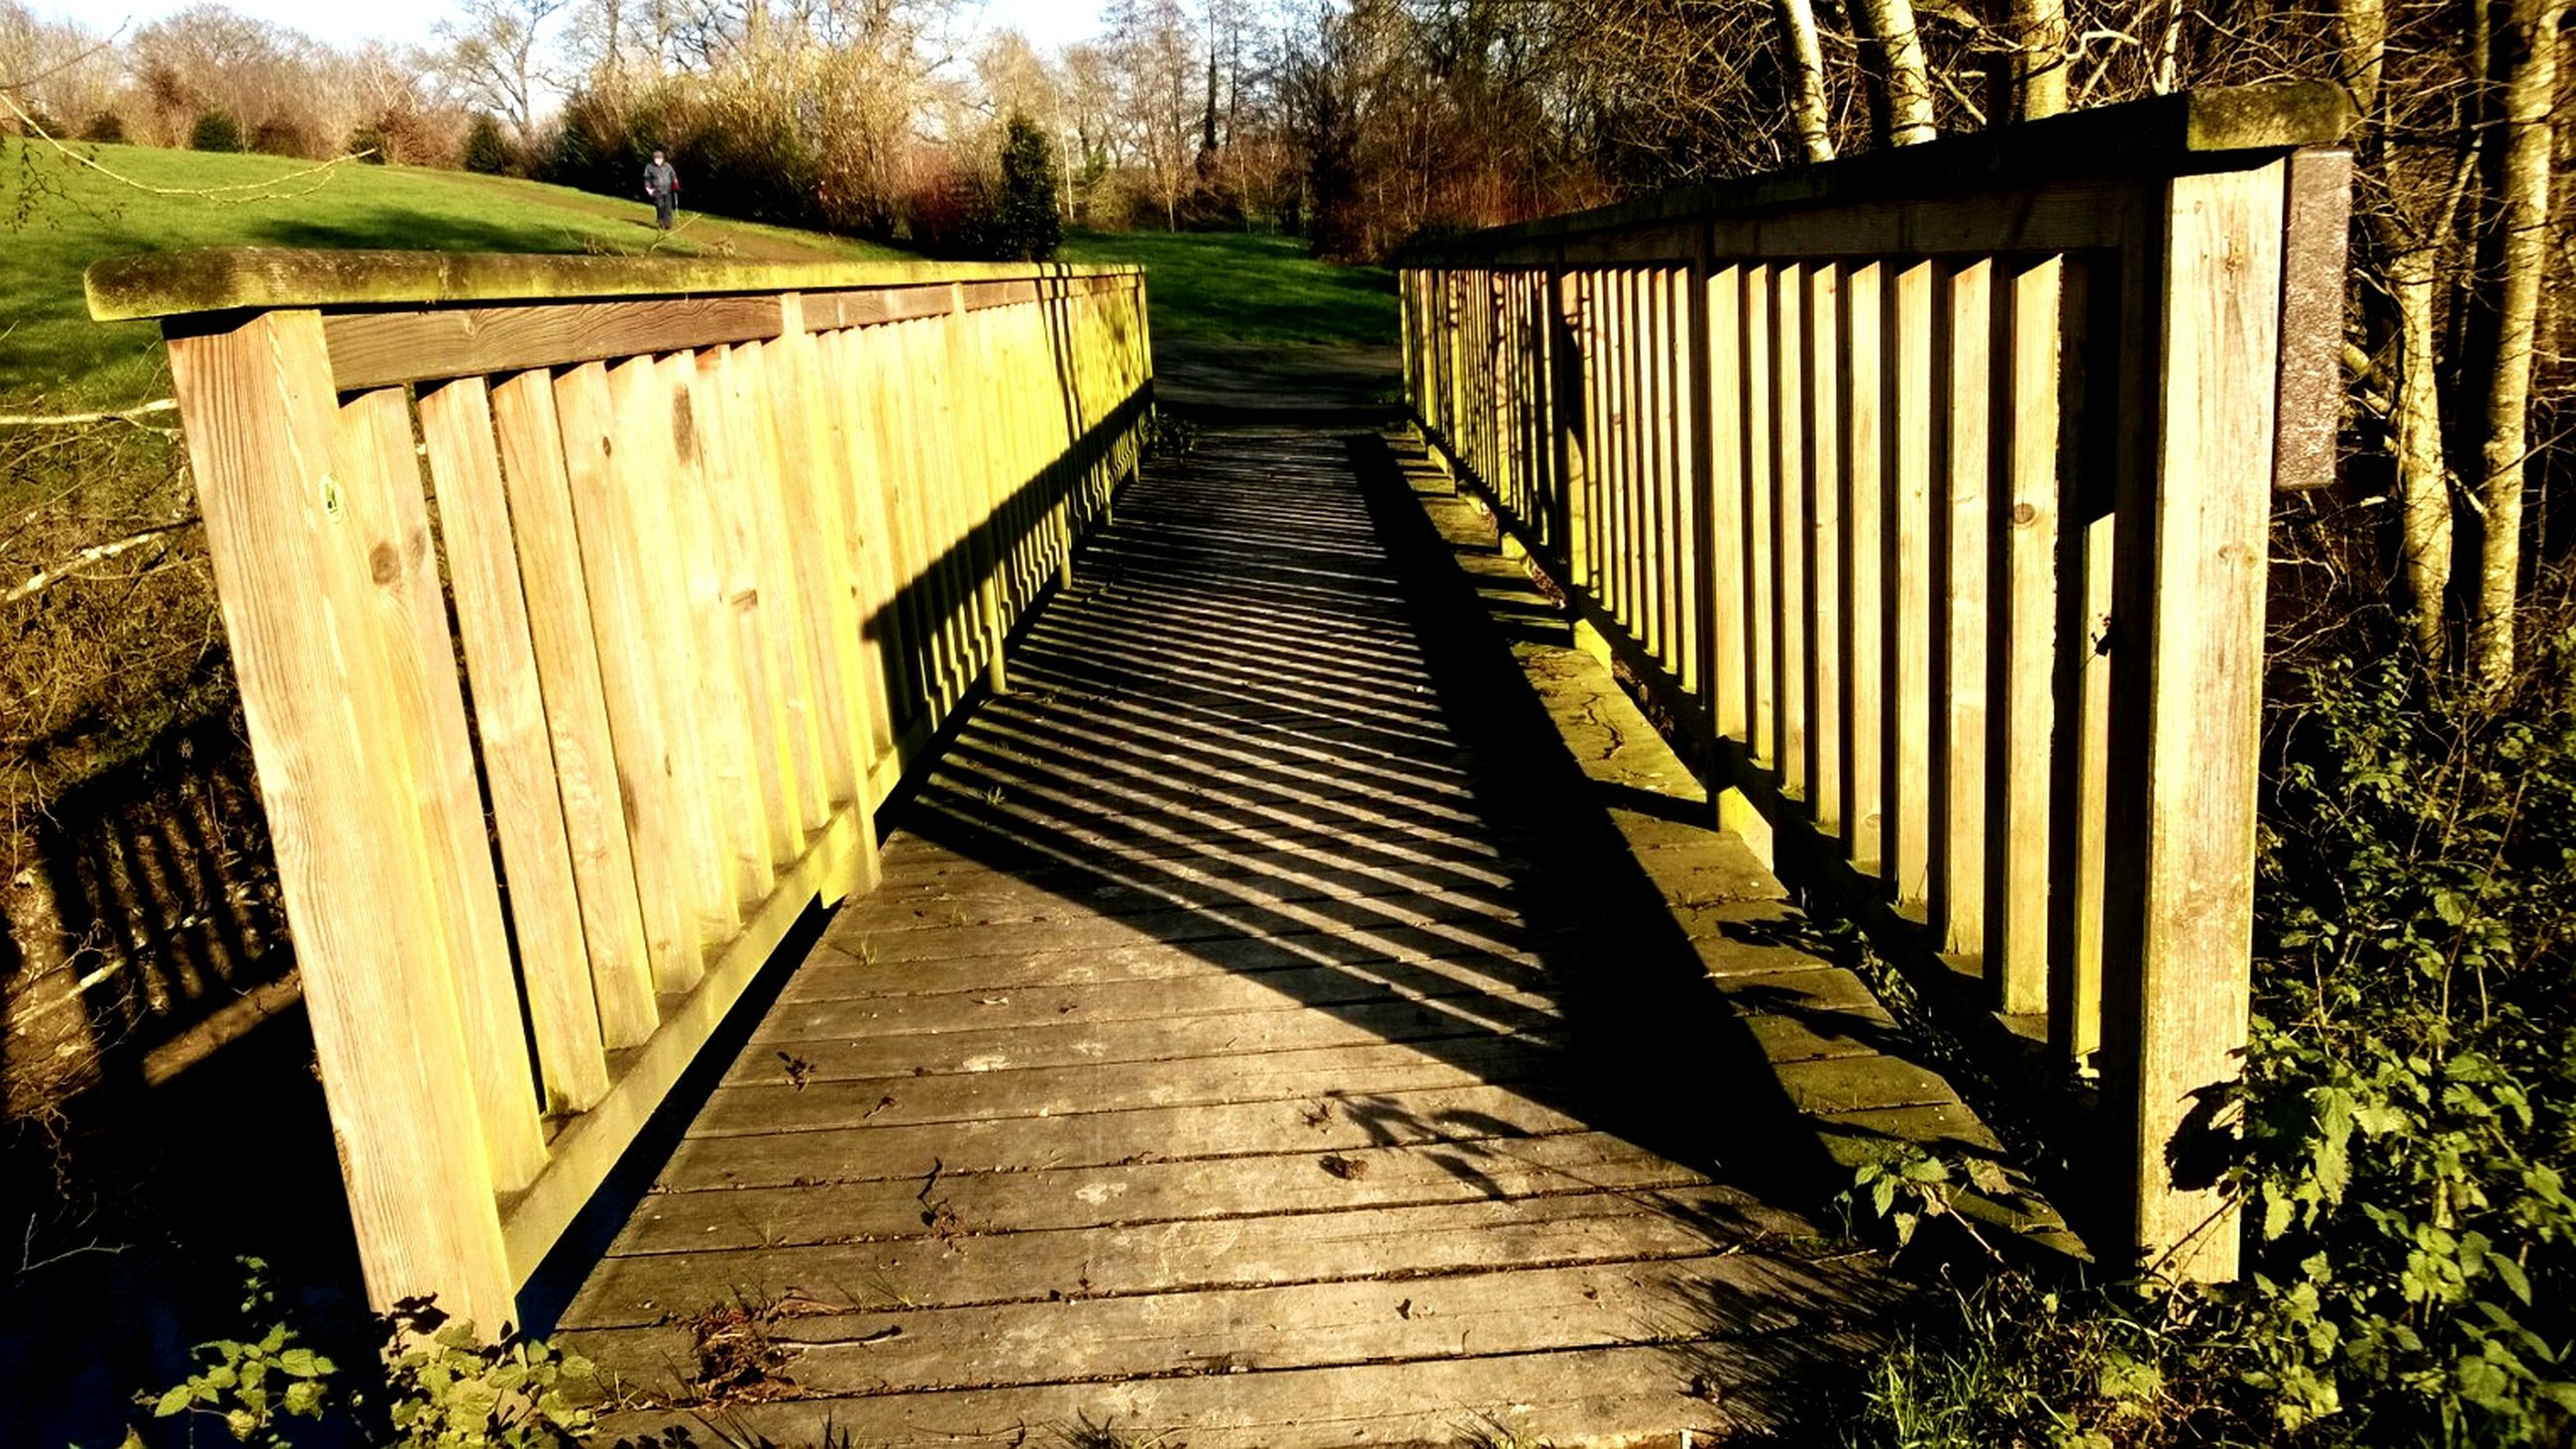 the way forward, tree, diminishing perspective, railing, connection, footbridge, built structure, vanishing point, narrow, grass, bridge - man made structure, wood - material, tranquility, long, walkway, architecture, boardwalk, plant, forest, nature